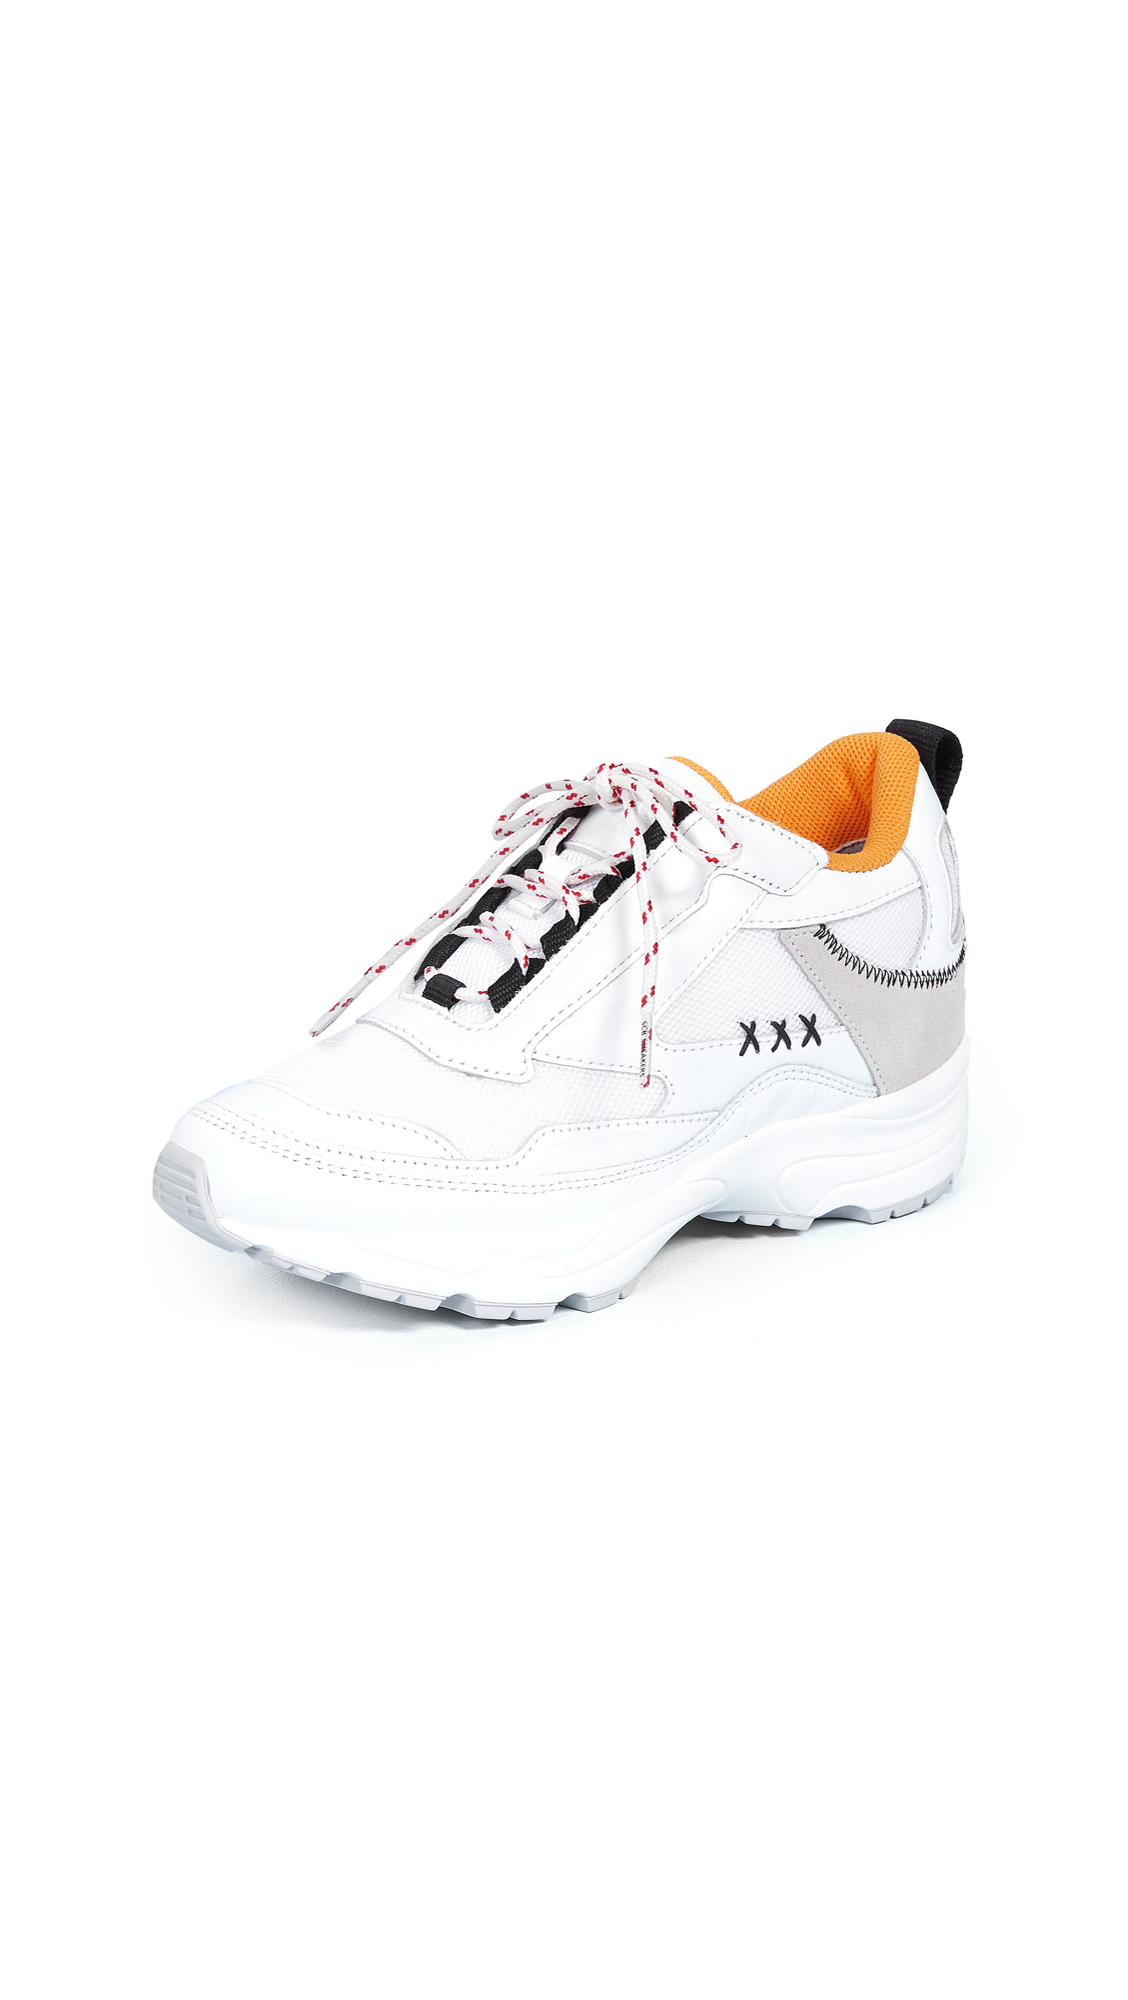 Suecomma Bonnie Colorblock Sneakers - White/White